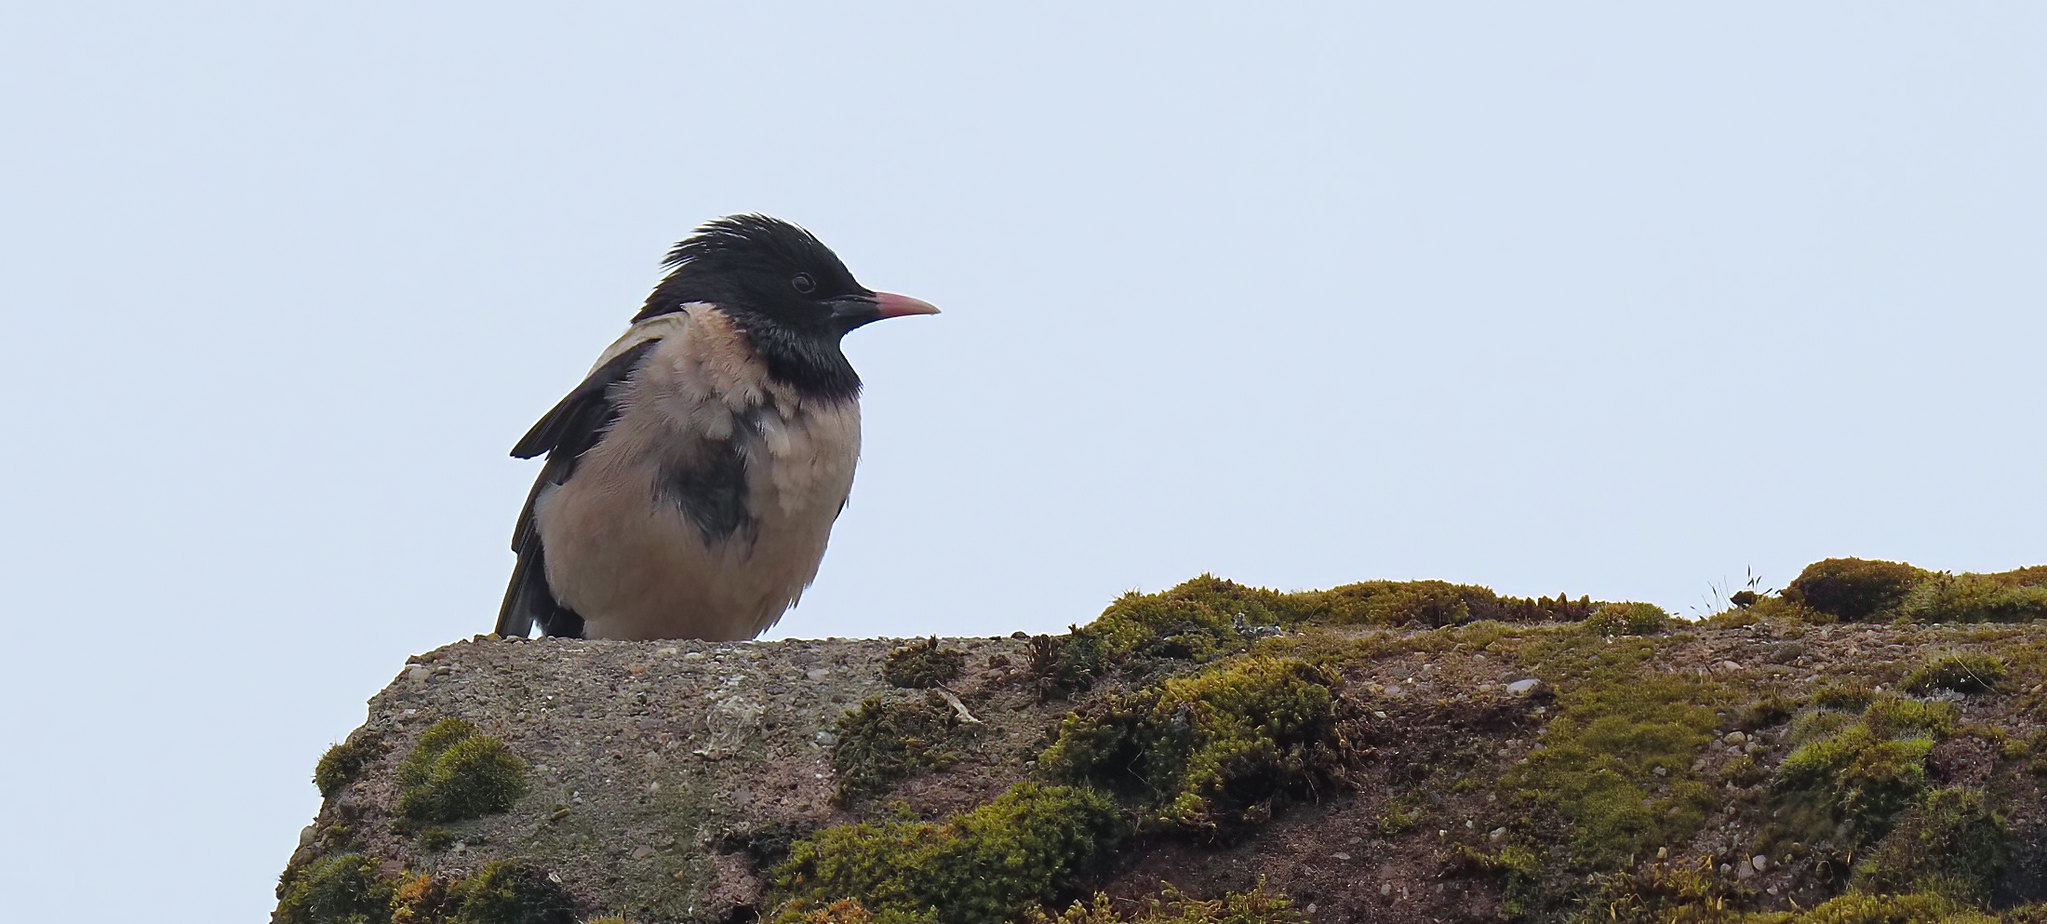 Rose Coloured Starling - best I could do today